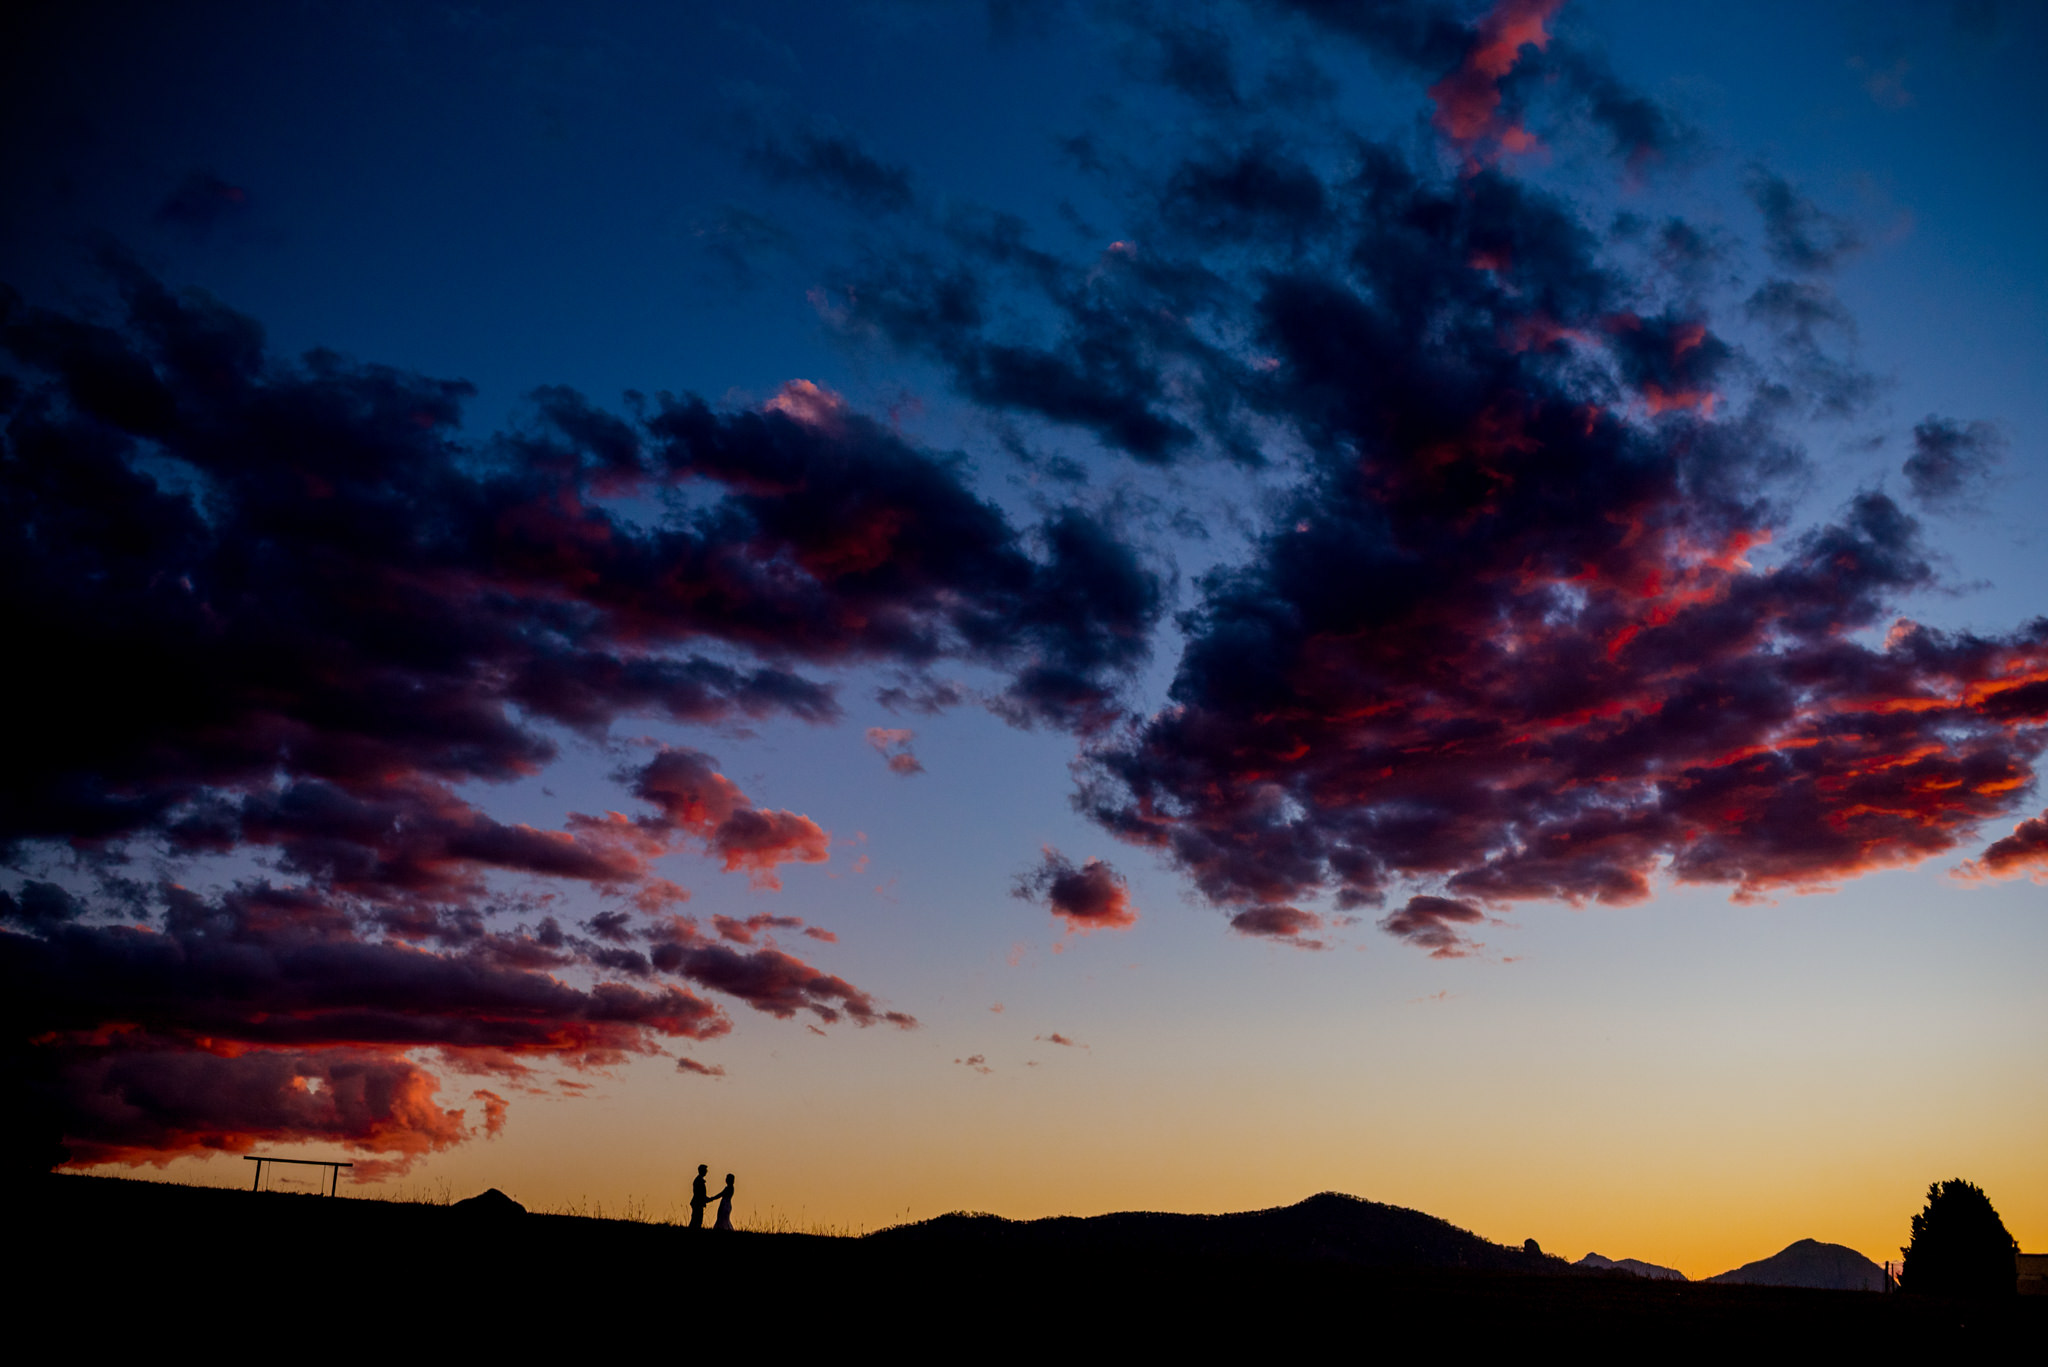 Red clouds float in a blue and orange sunset with a small silhouette of two people on a hill